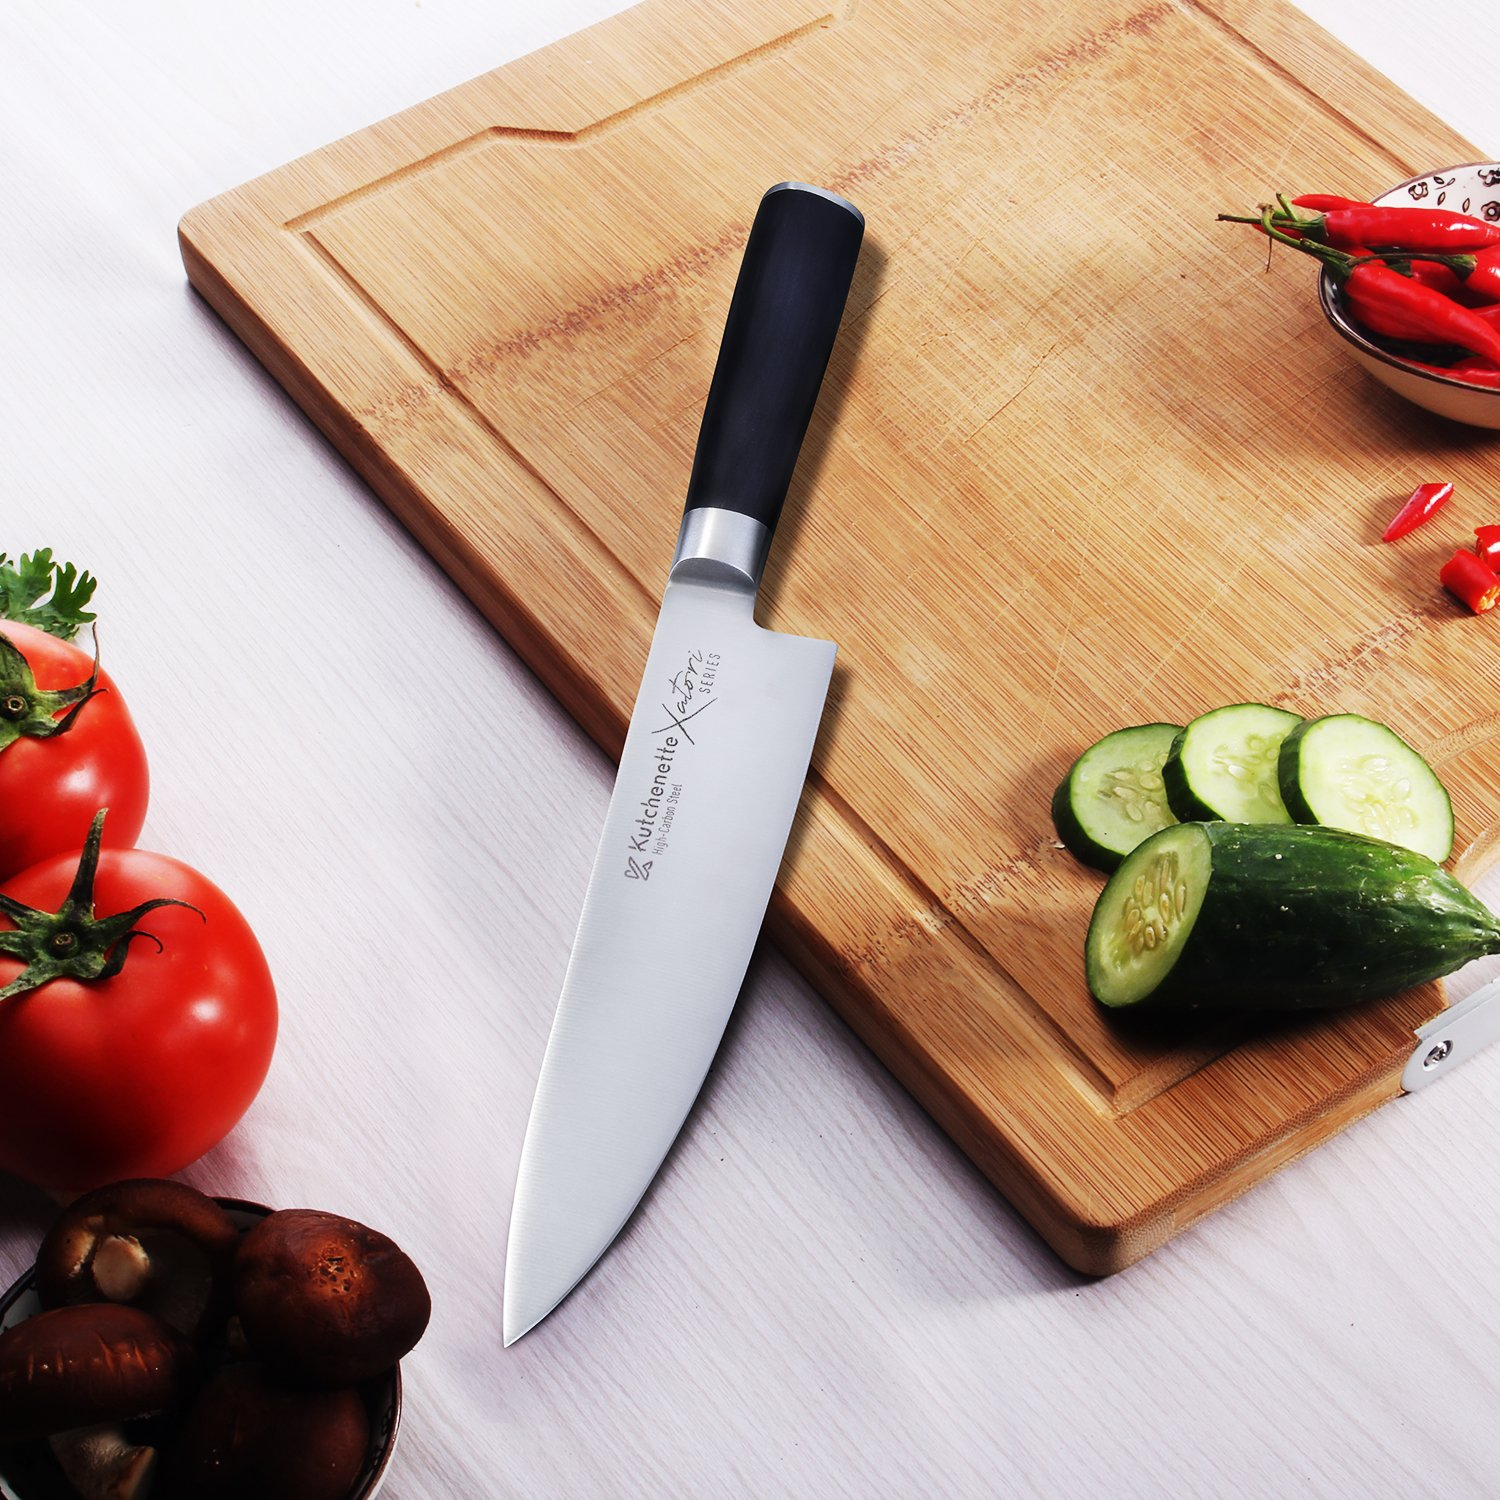 Sedge Chef Knife 8 Inch Professional Kitchen Knife Japanese High Carbon Stainless Steel With Black Pakkawood Handle With Case - Xatori Series by SEDGE (Image #4)